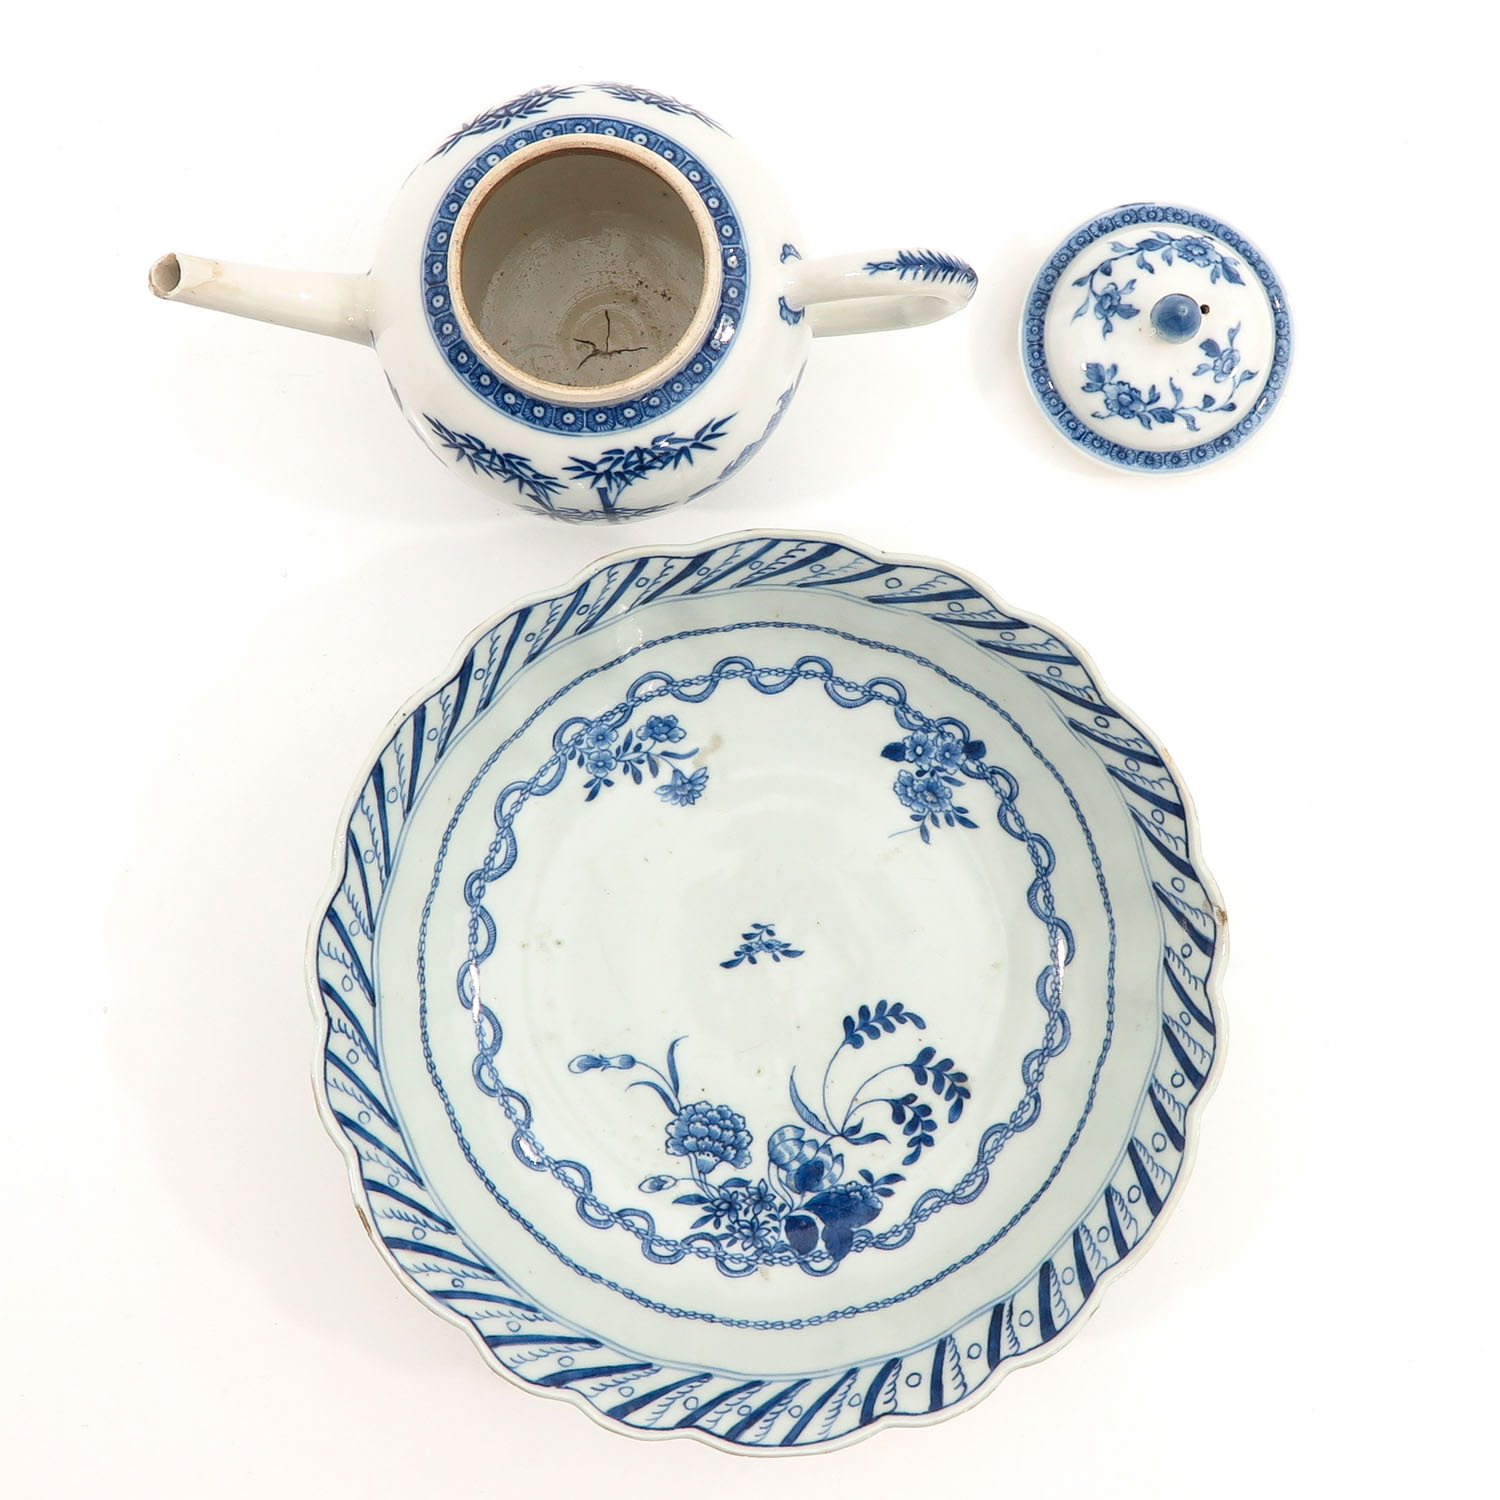 A Blue and White Bowl and Teapot - Image 5 of 10